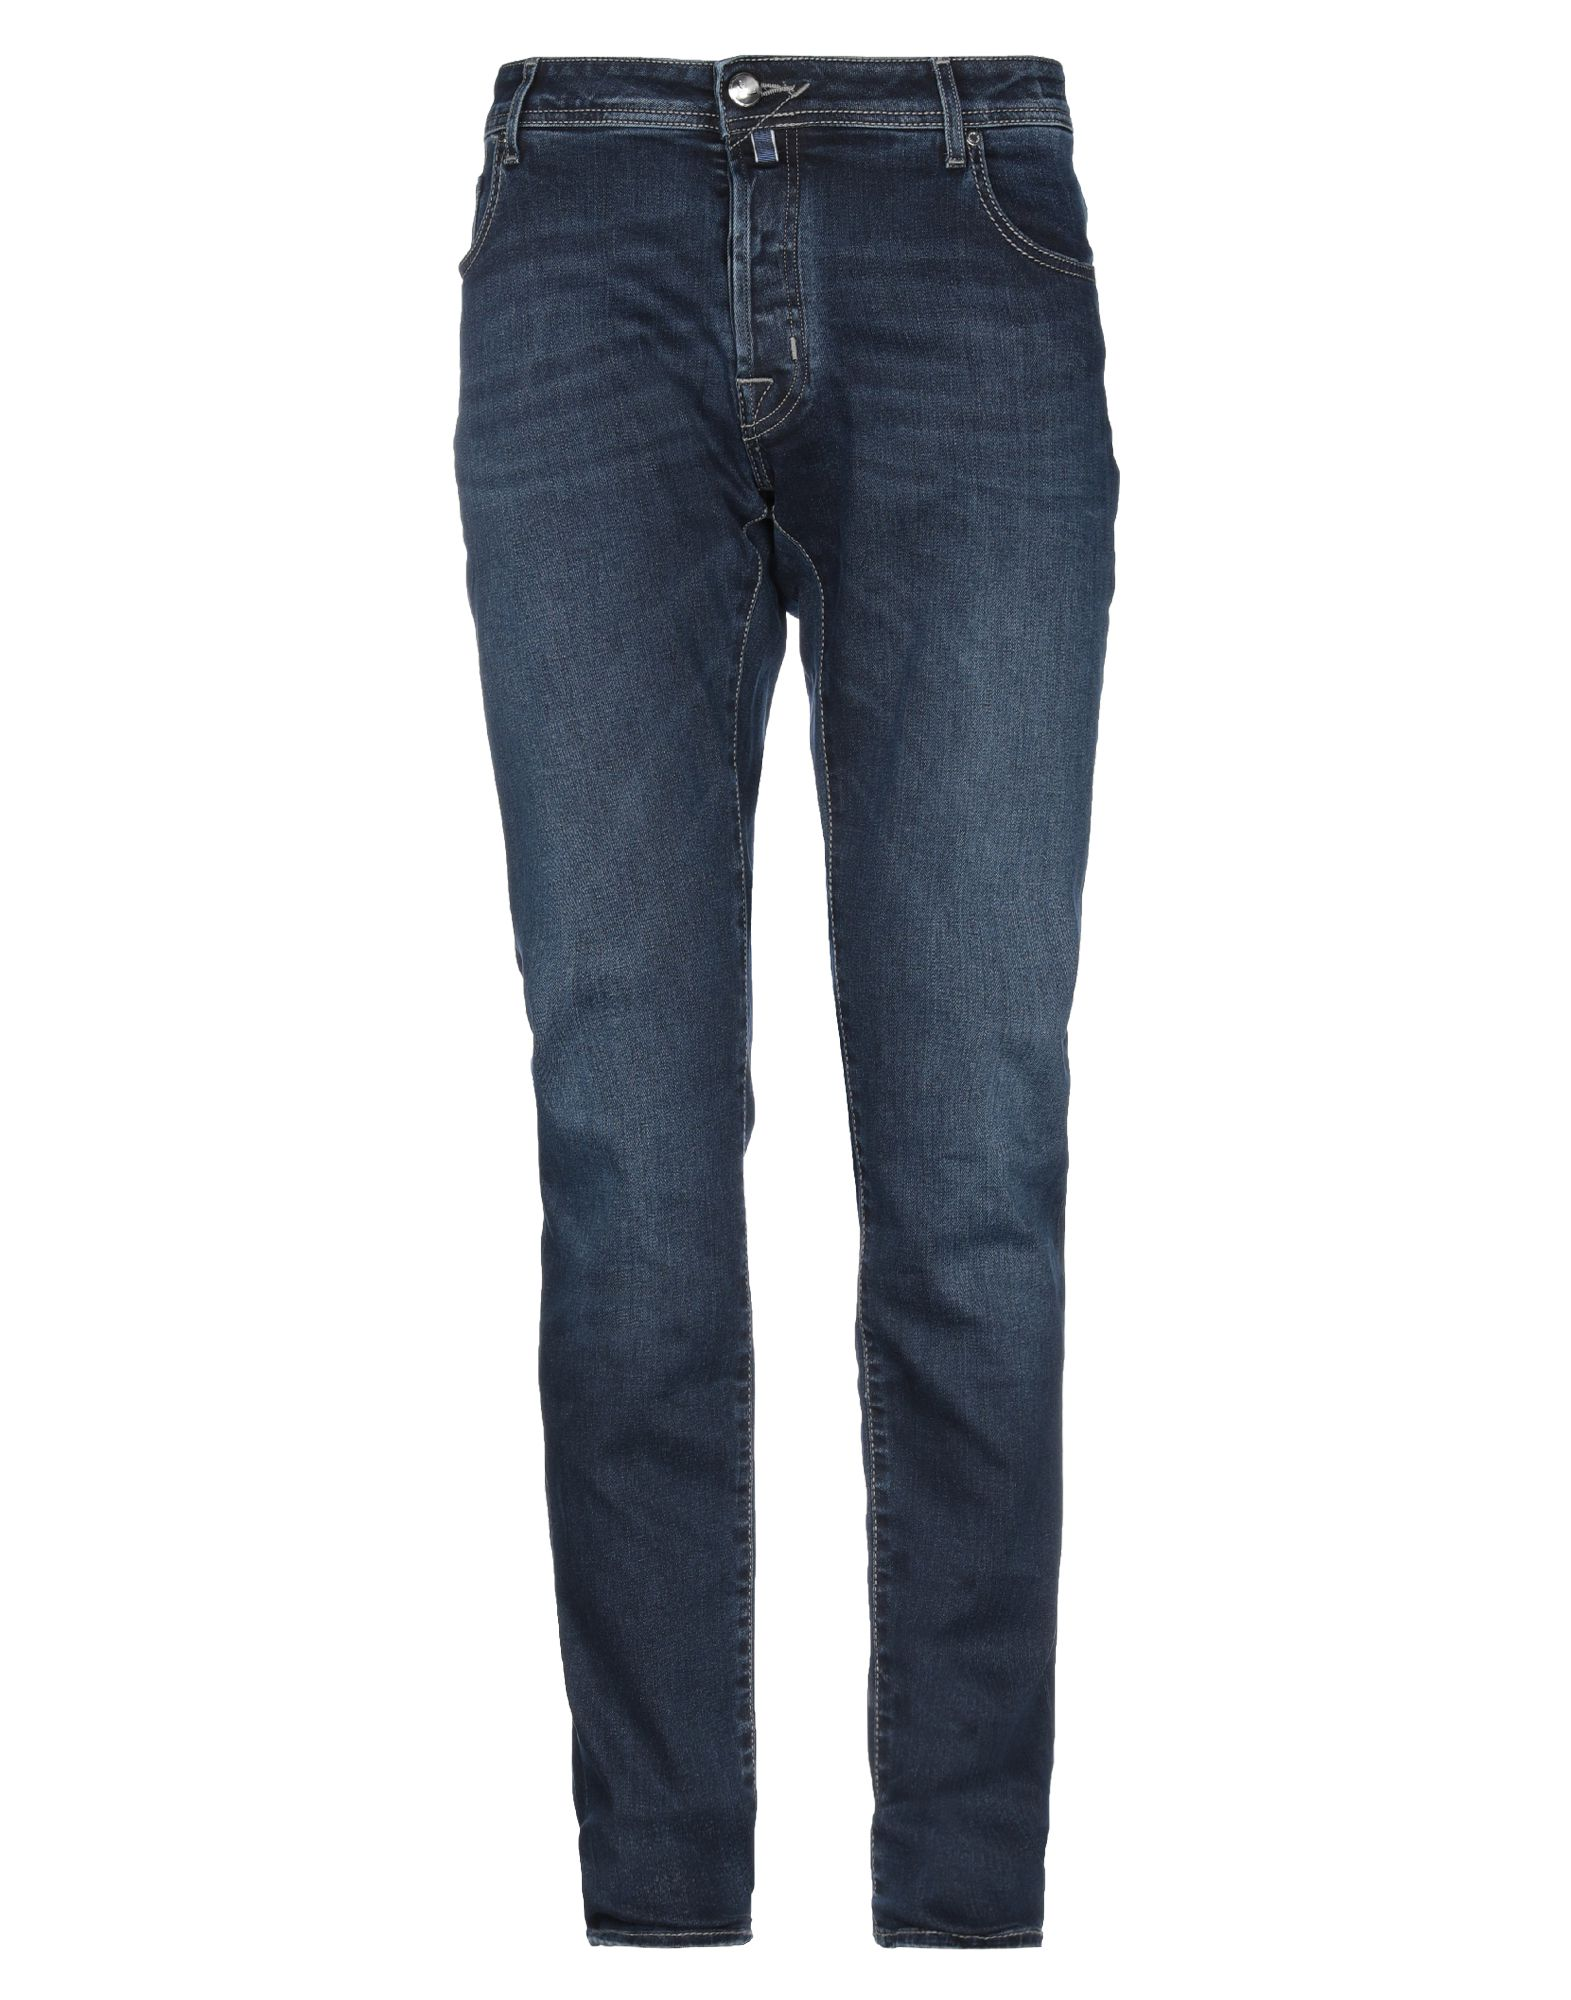 JACOB COHЁN Denim pants - Item 42811389